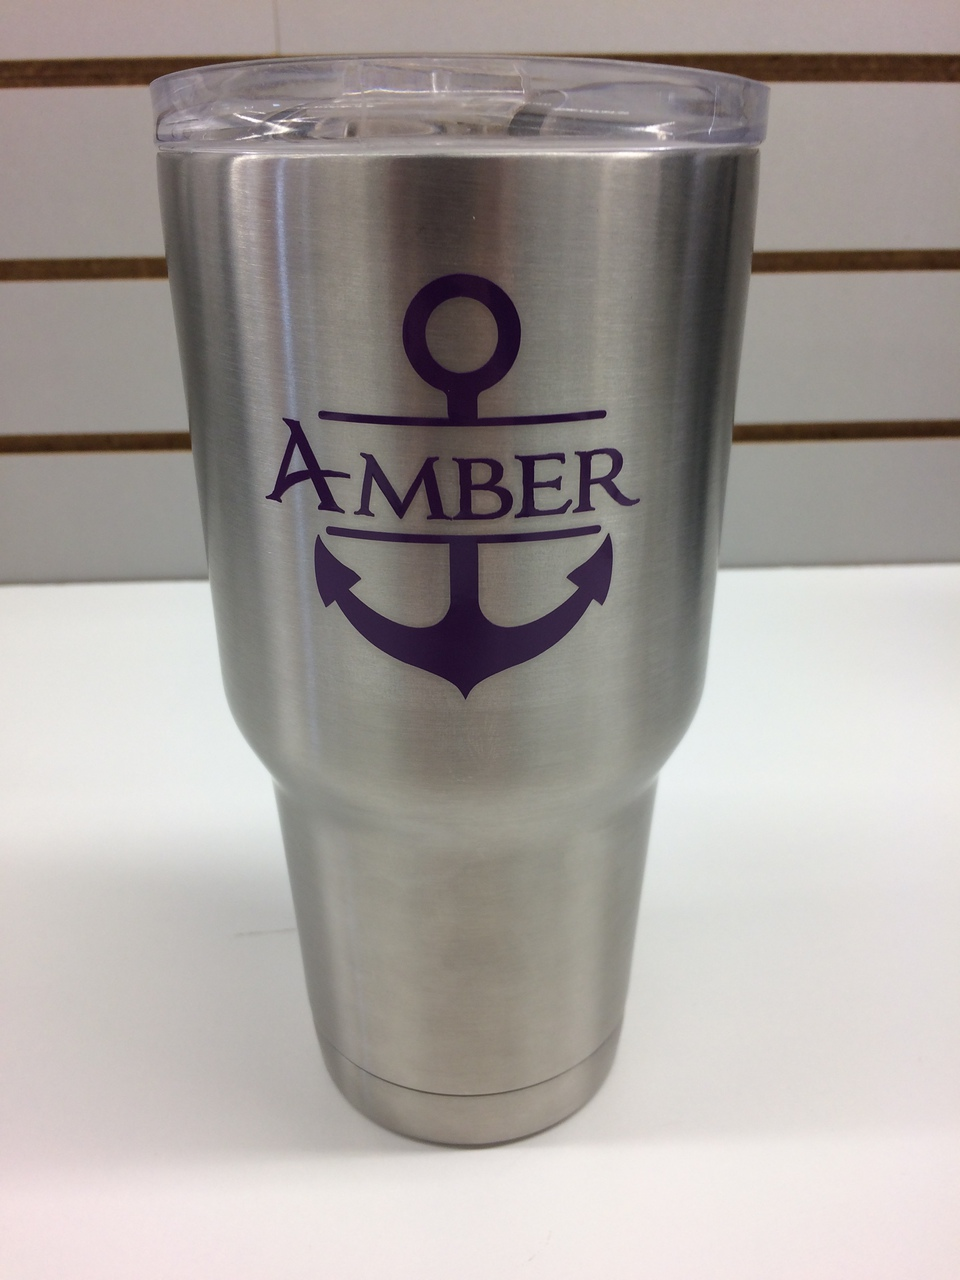 Vinyl stickers decals with anchor for rtic or yeti tumblers 3x3 inch set